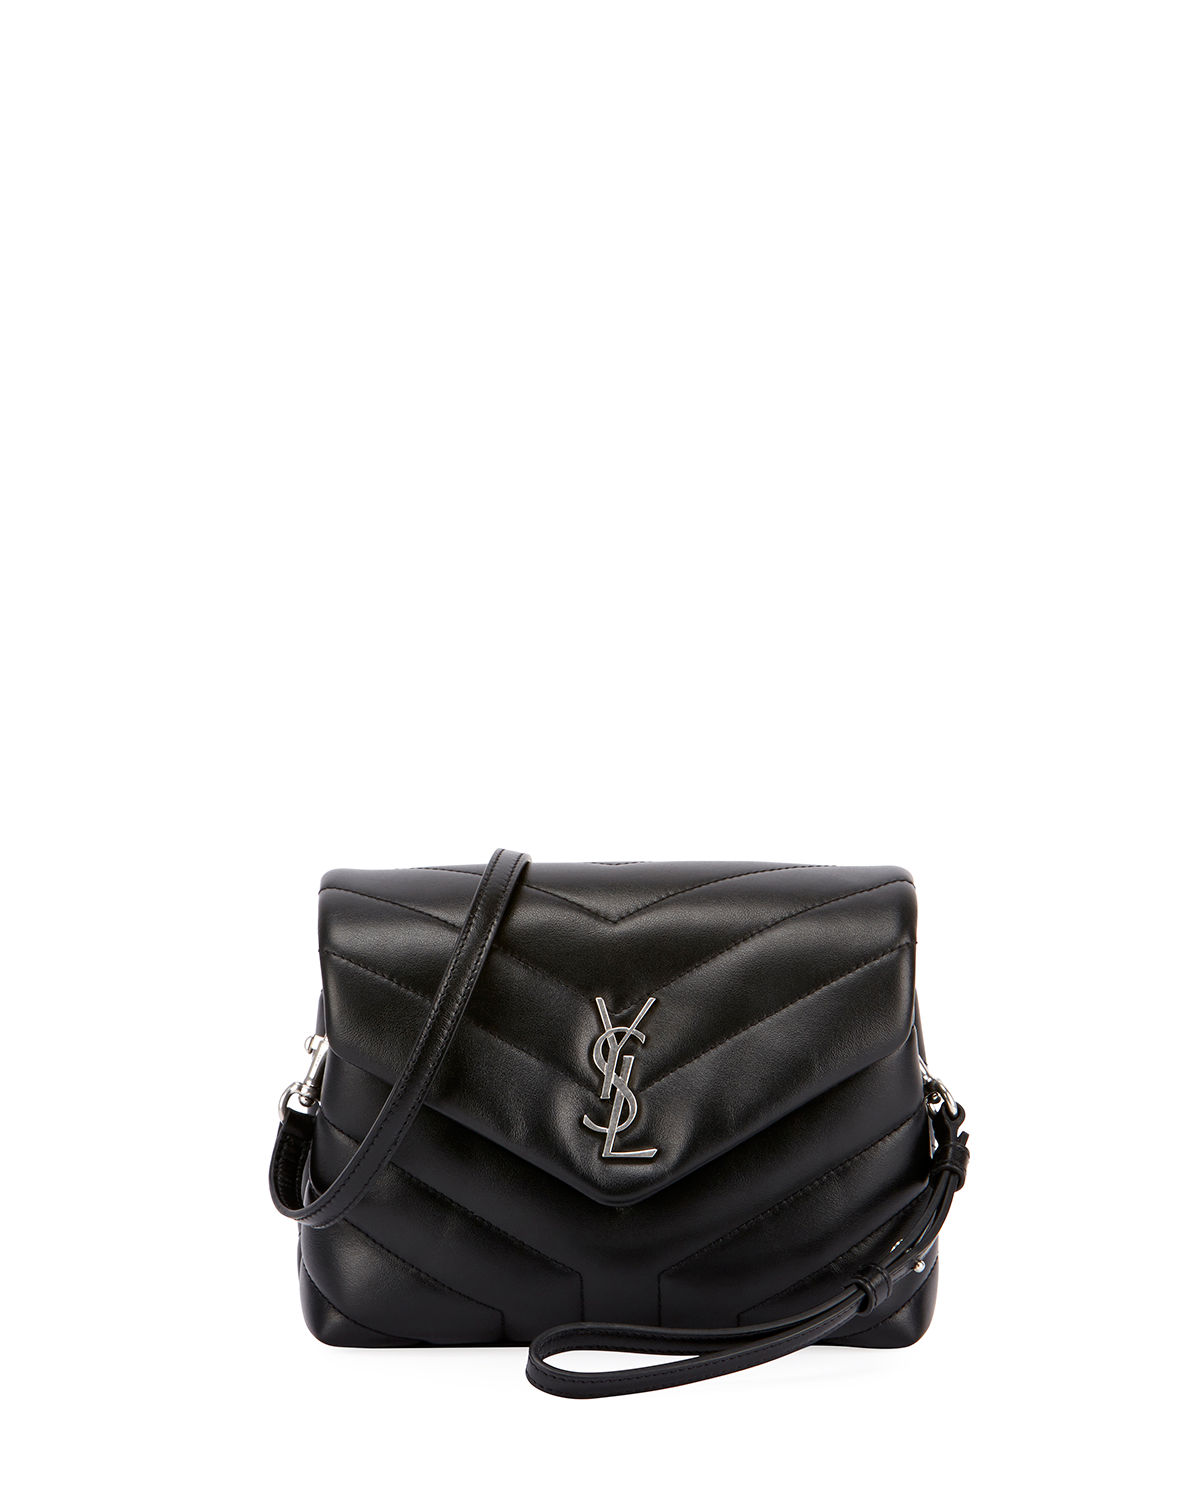 Saint LaurentLoulou Monogram YSL Mini V-Flap Calf Leather Crossbody Bag -  Nickel Oxide Hardware 2db93c92386e2